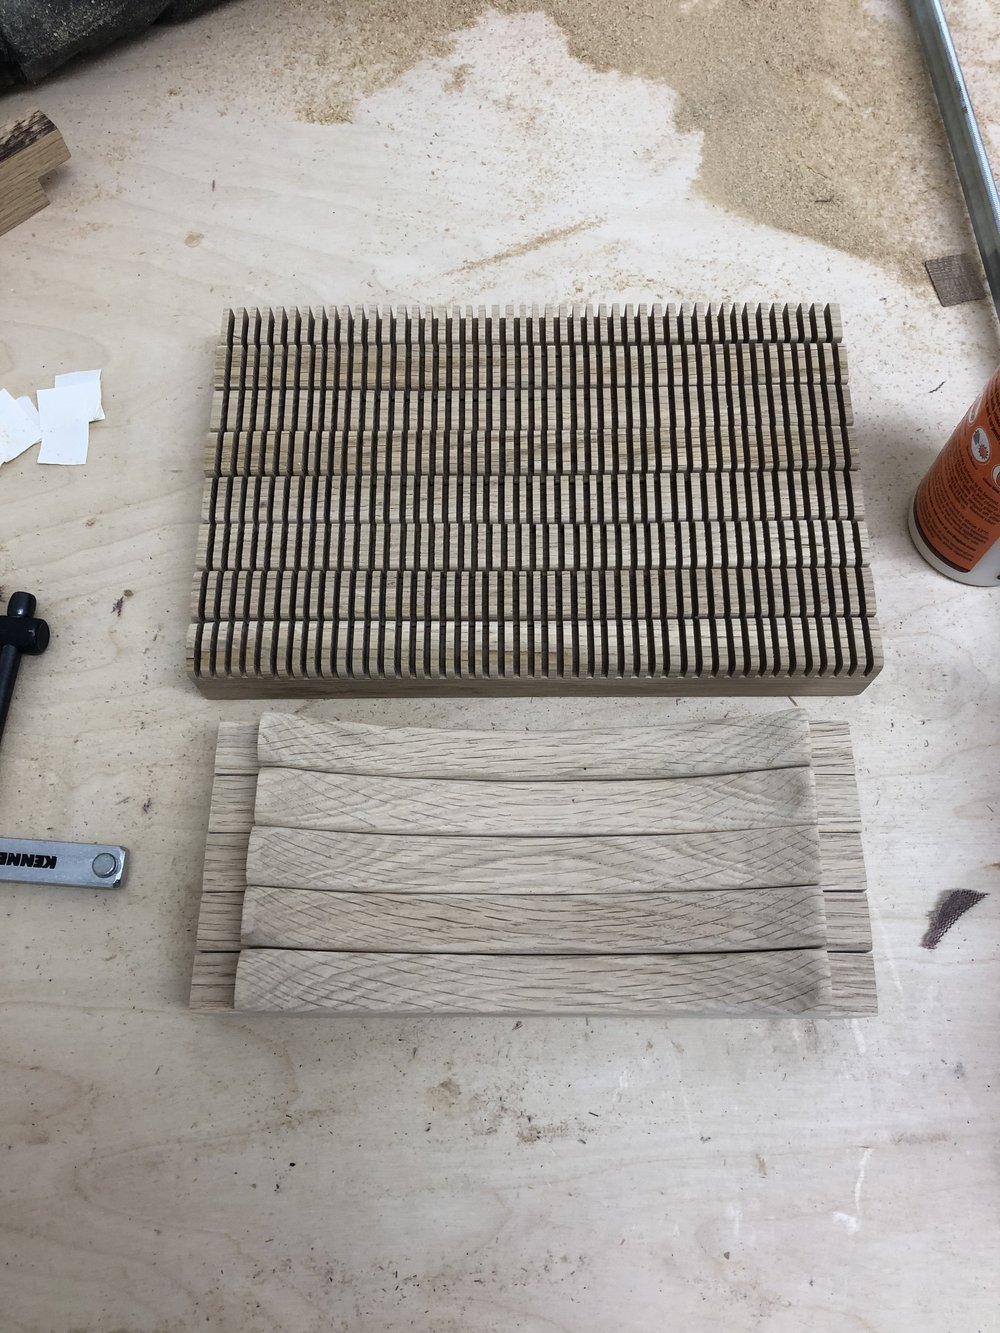 Loom   Made with only hand tools in Oak using Half Lap Dowel Joints.